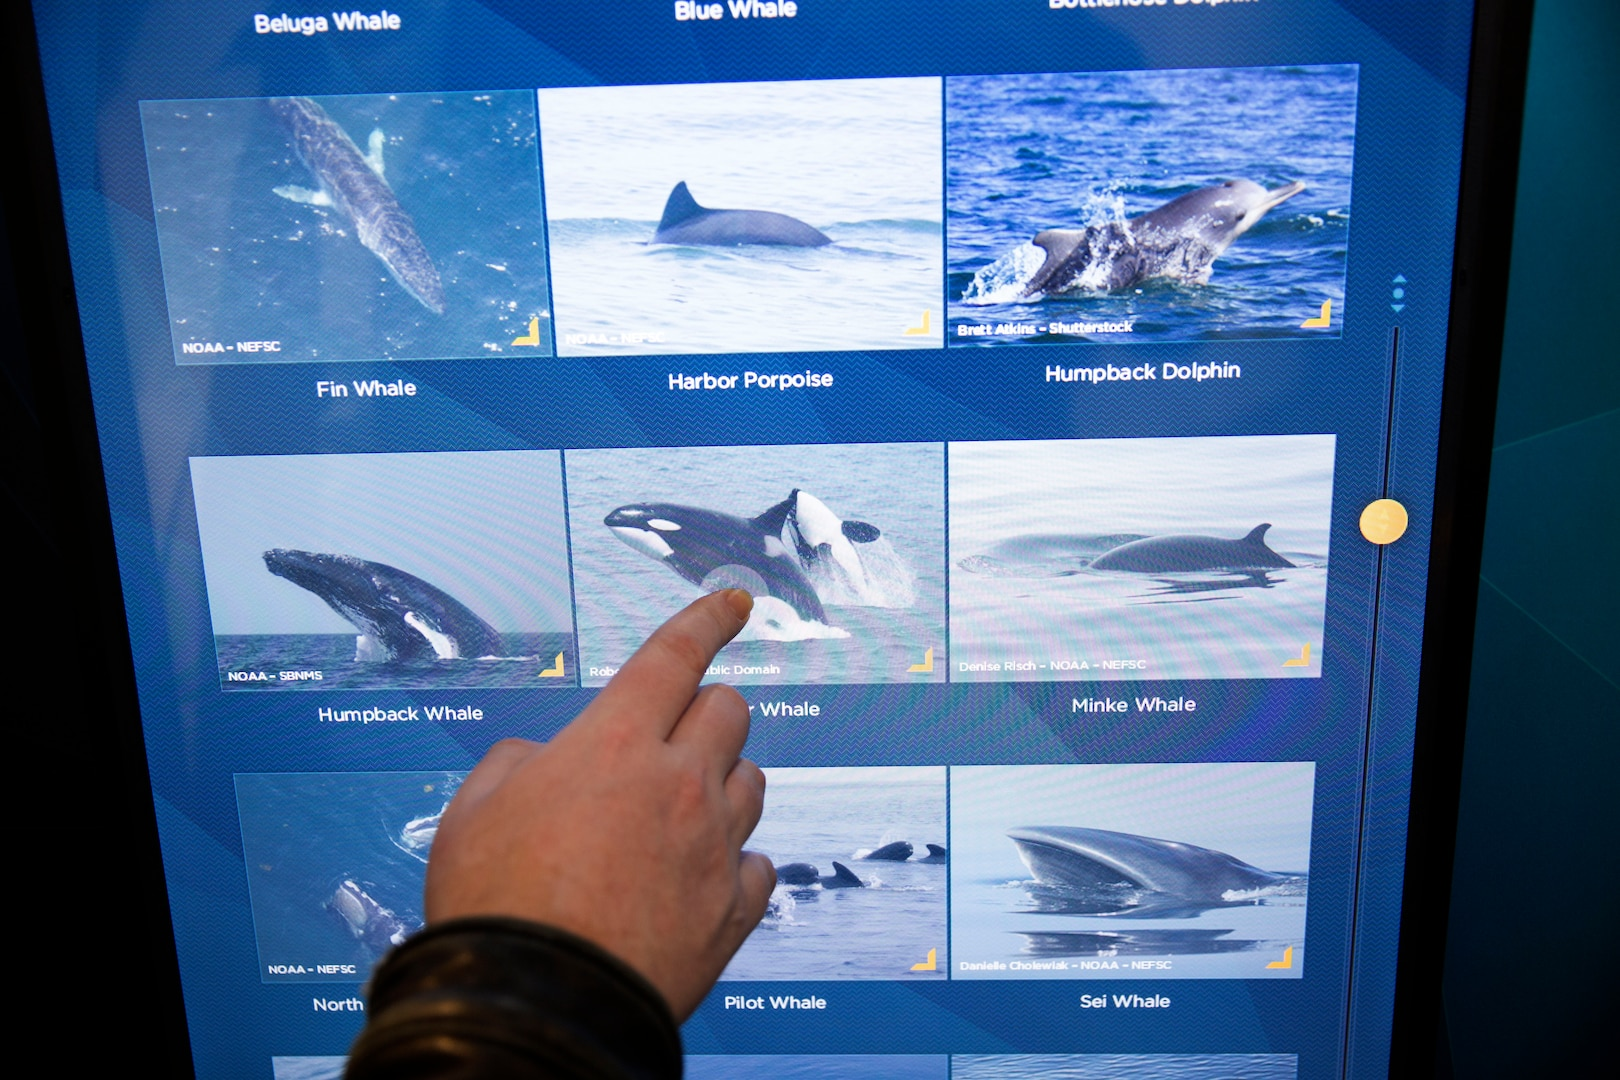 The Stewards of the Sea exhibit, which opened in 2013, highlights marine mammal research and shipboard environmental protection at Nauticus.